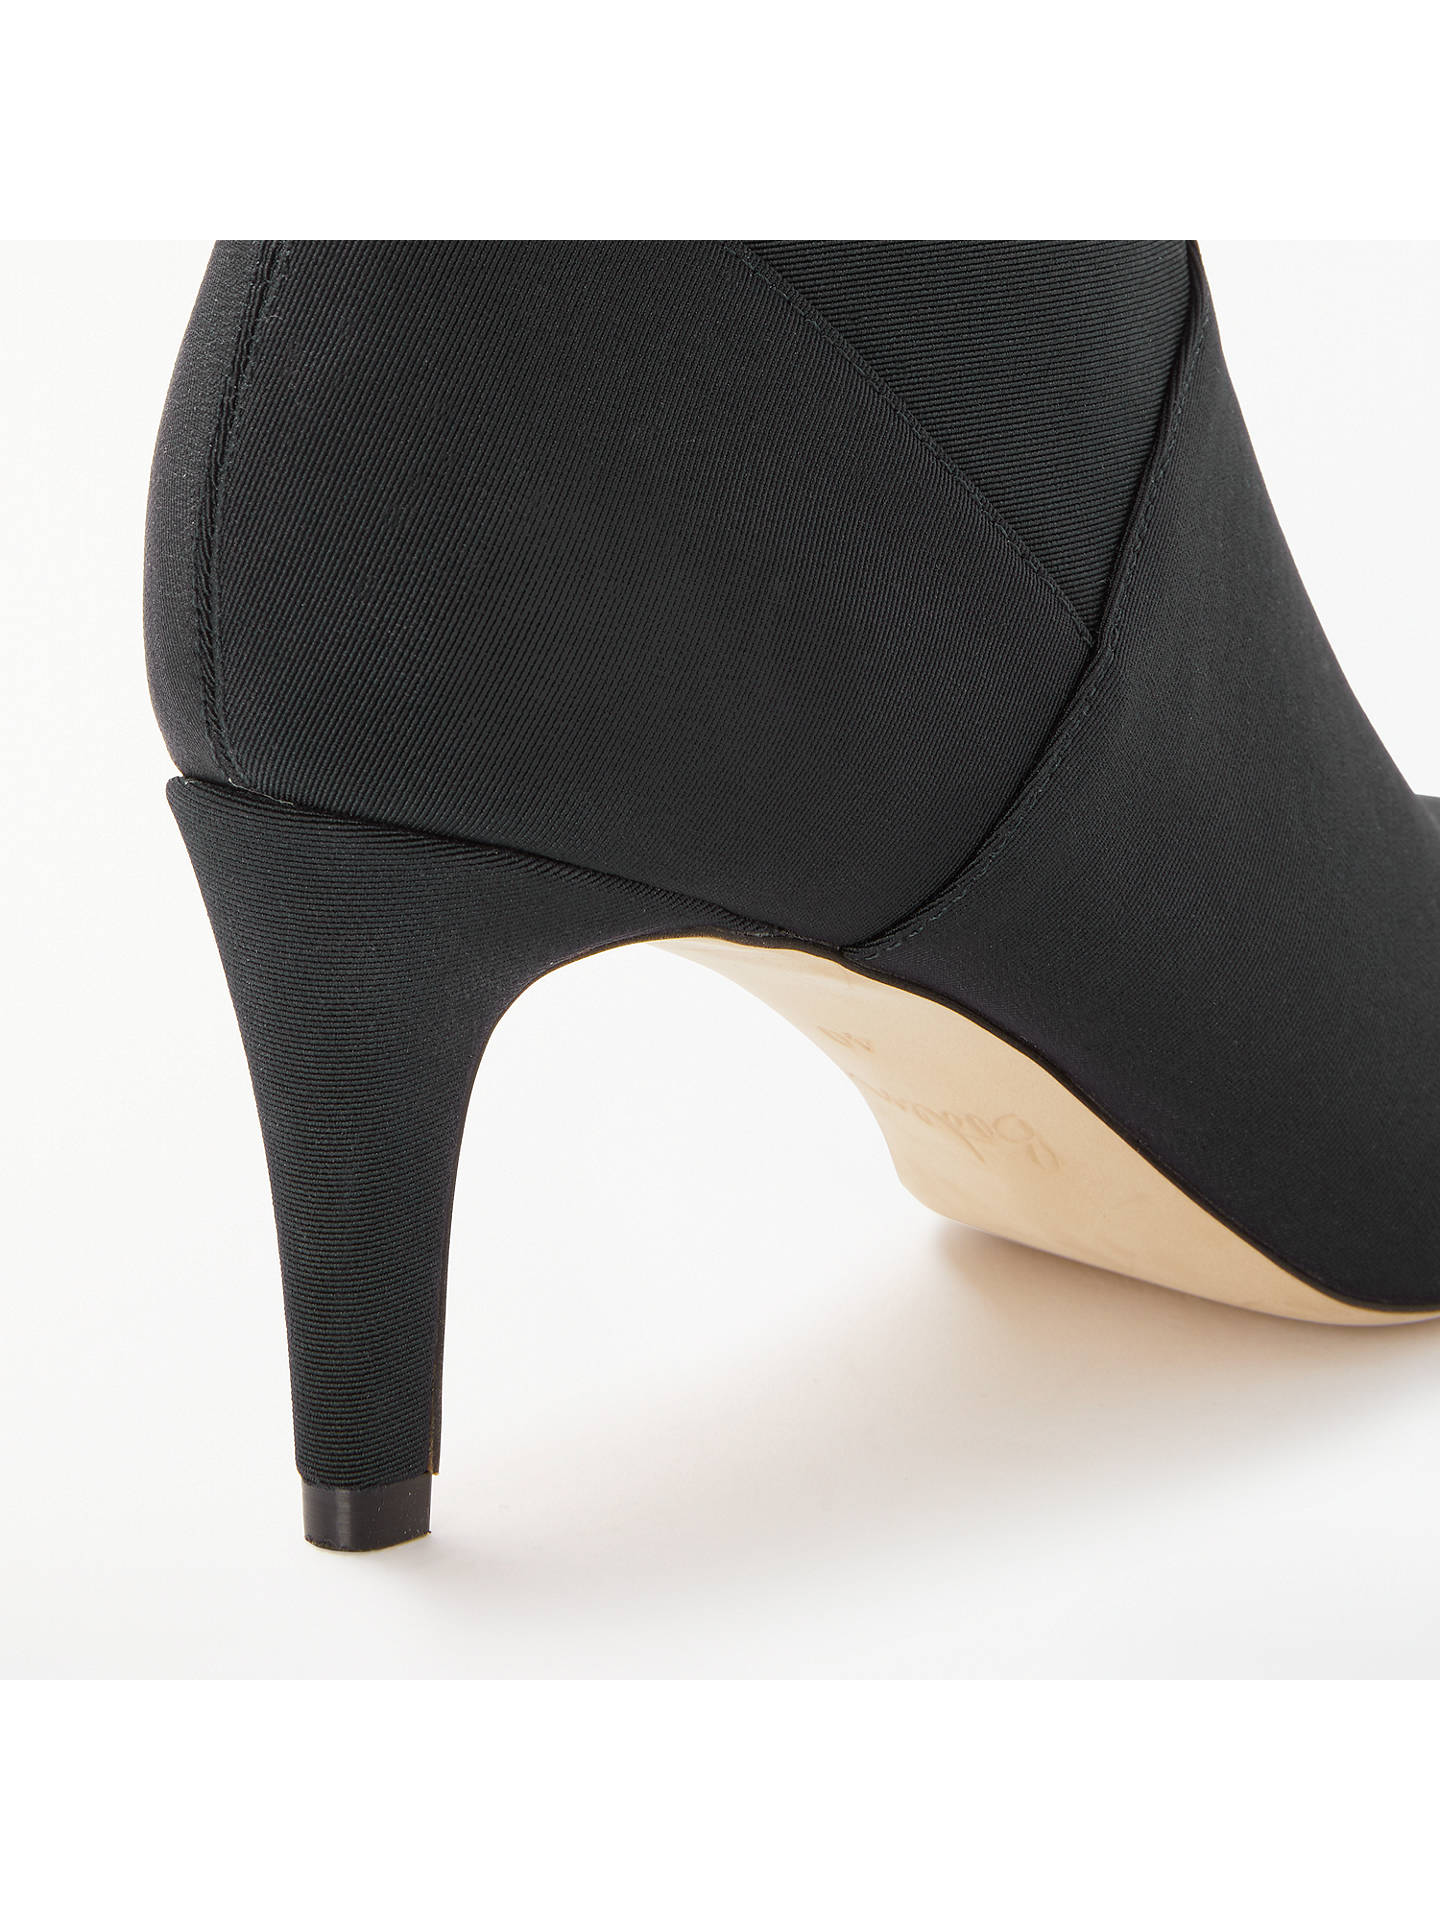 BuyBoden Stretch Stiletto Heel Ankle Boots, Black, 4 Online at johnlewis.com